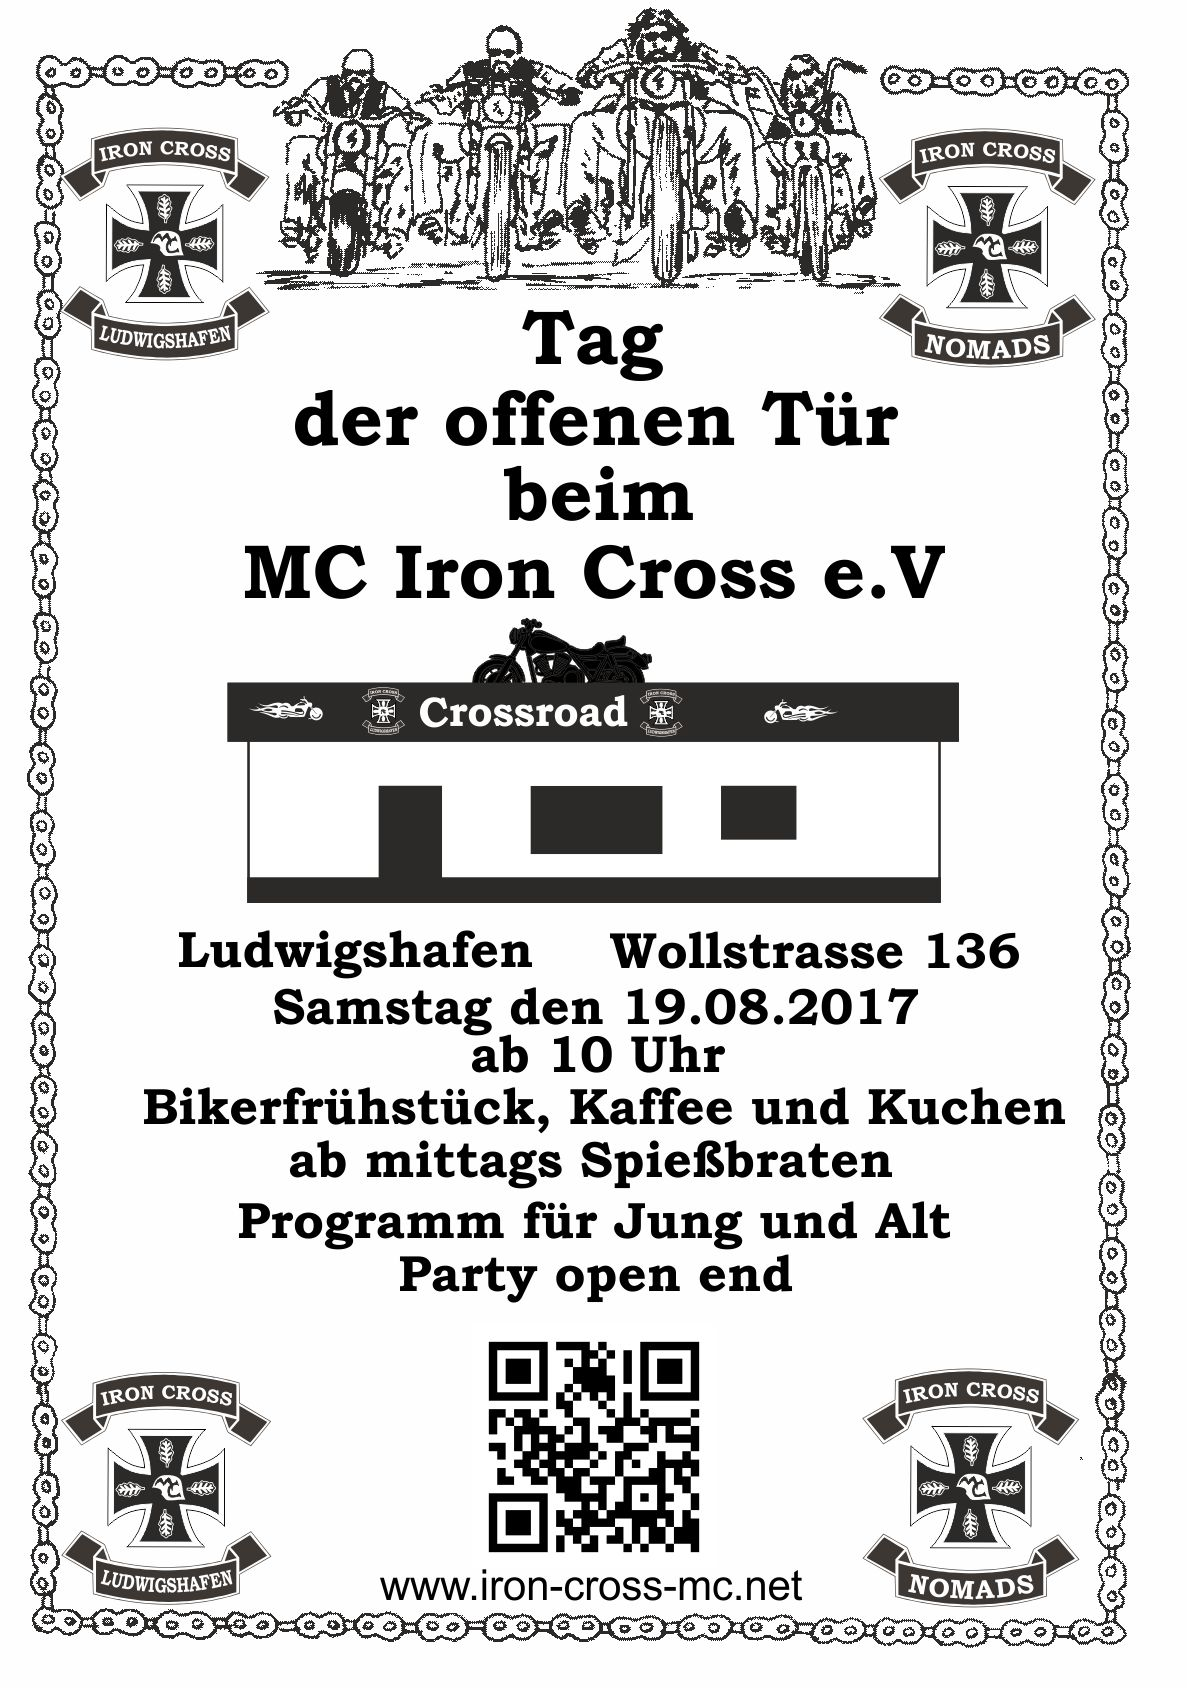 Single party ludwigshafen